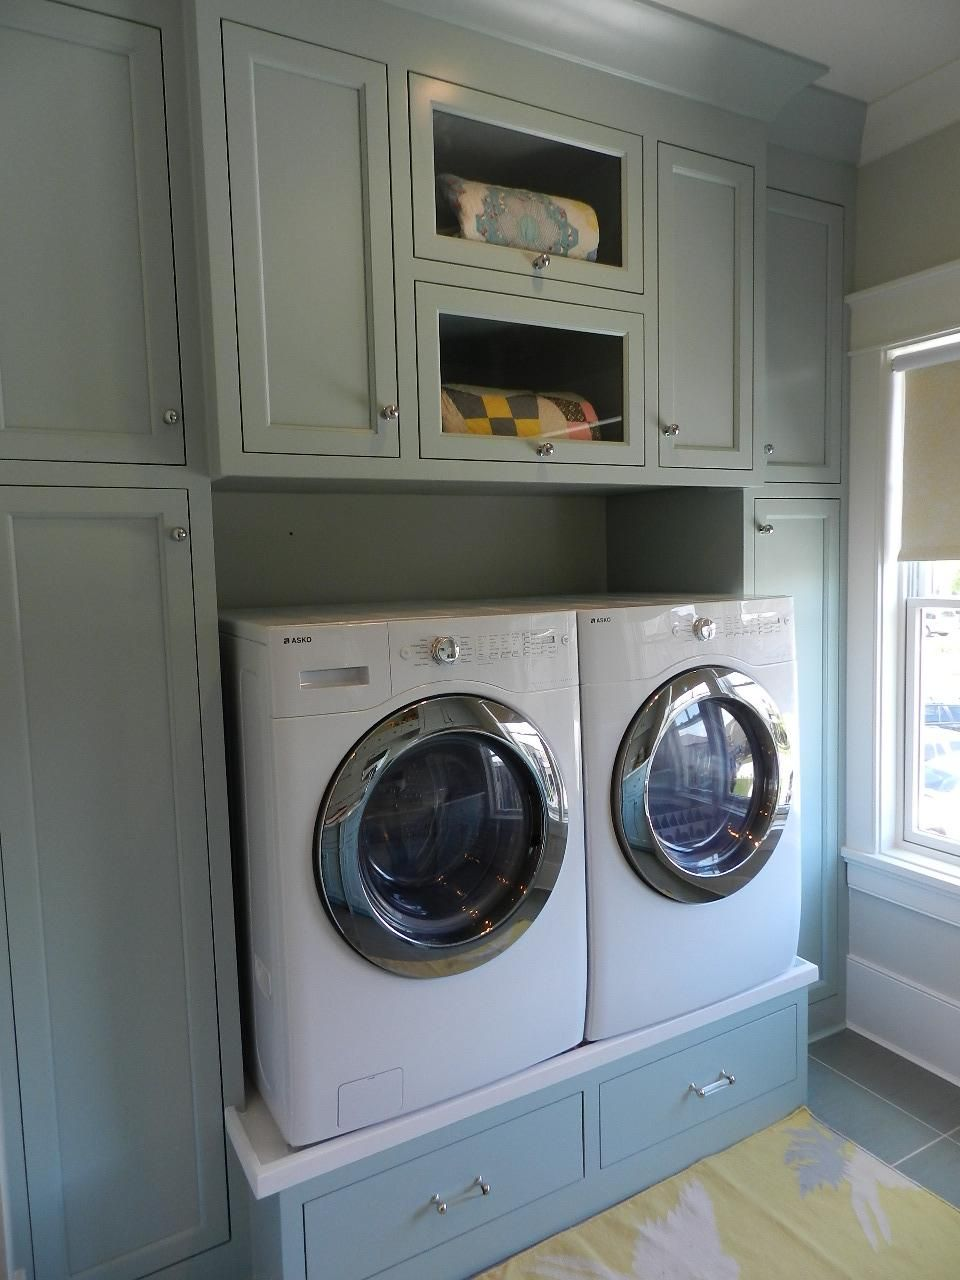 Laundry Room Front Load Washer Pedestal Home Designs on glass washer, counter over front-loading washer, laundry room front loader counter top,